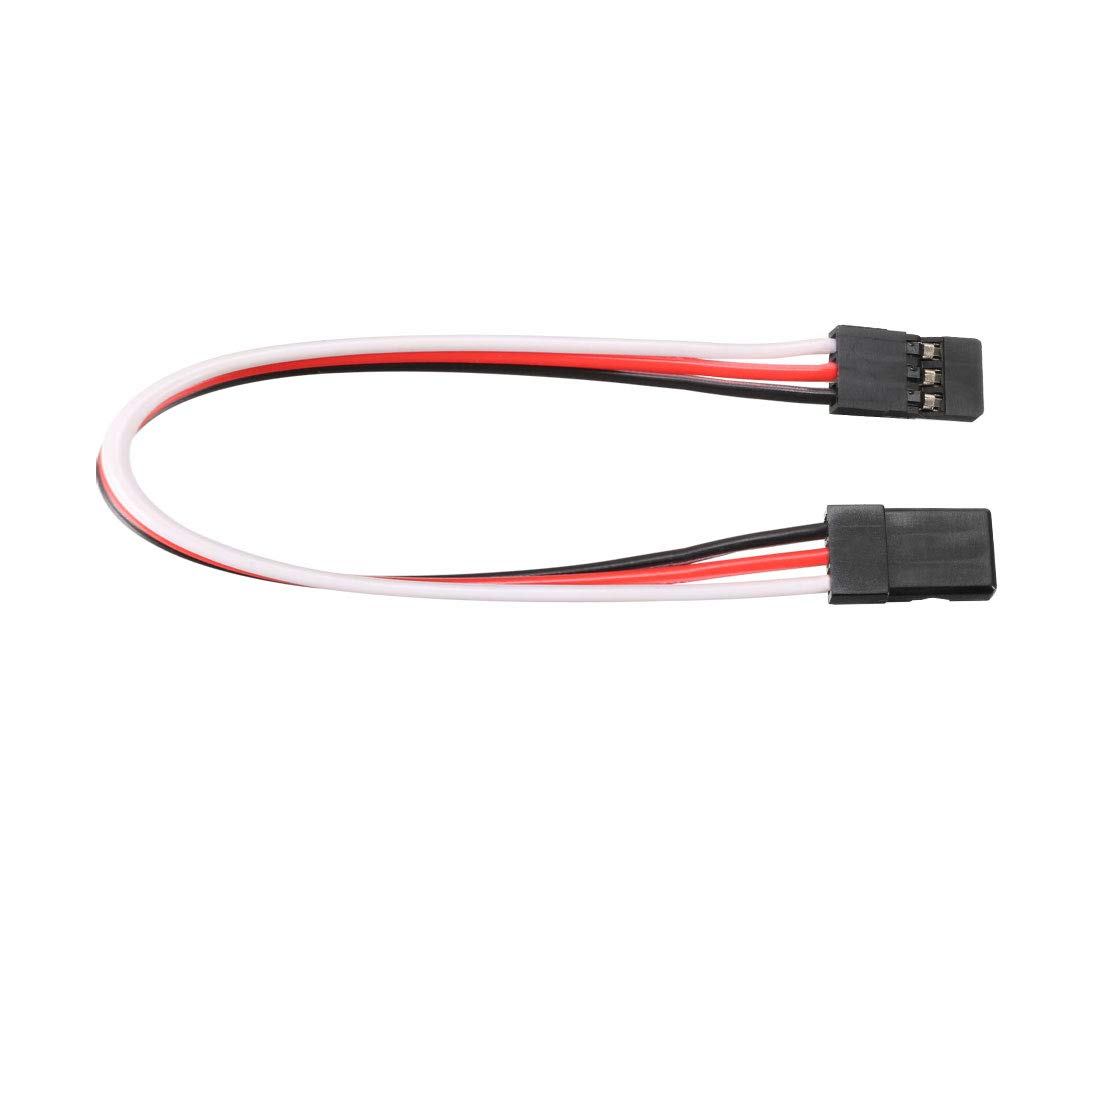 uxcell 5Pcs 32.5CM 3-Pin Male to Male Lead Servo Extension Cable Cord Connectors 22AWG 60-Cores Wire for RC Futaba JR Servo